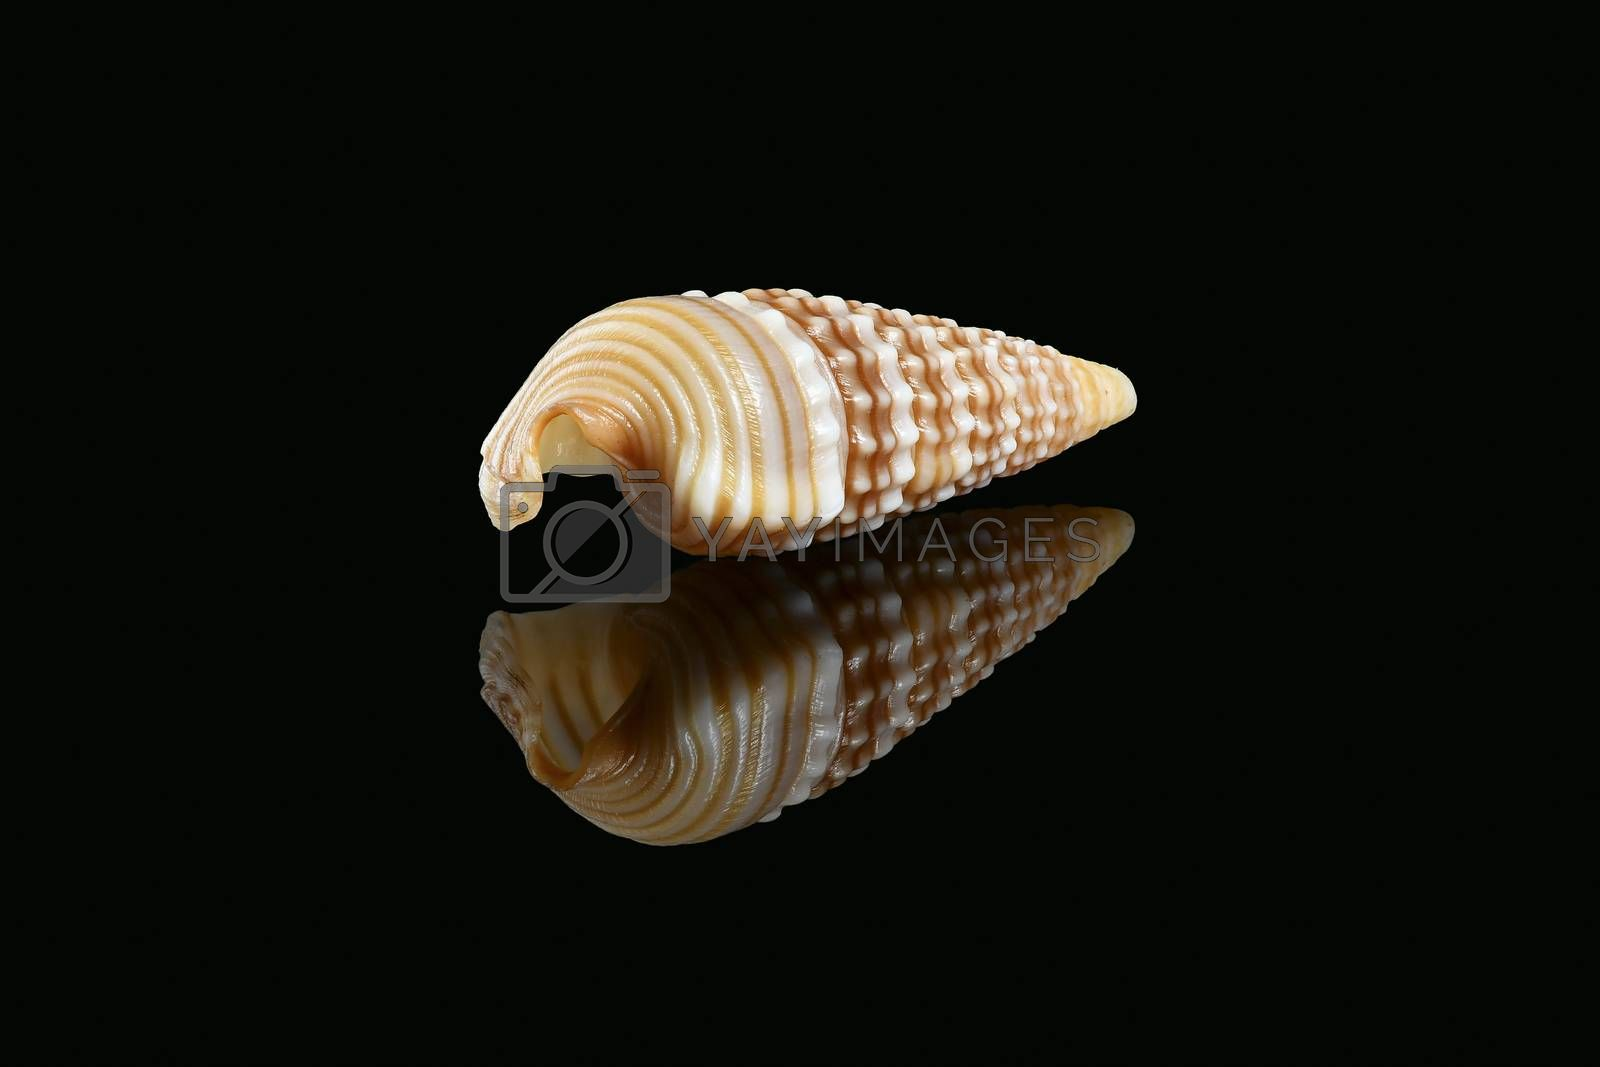 Royalty free image of Girdled horn snail seashell on black background by GABIS